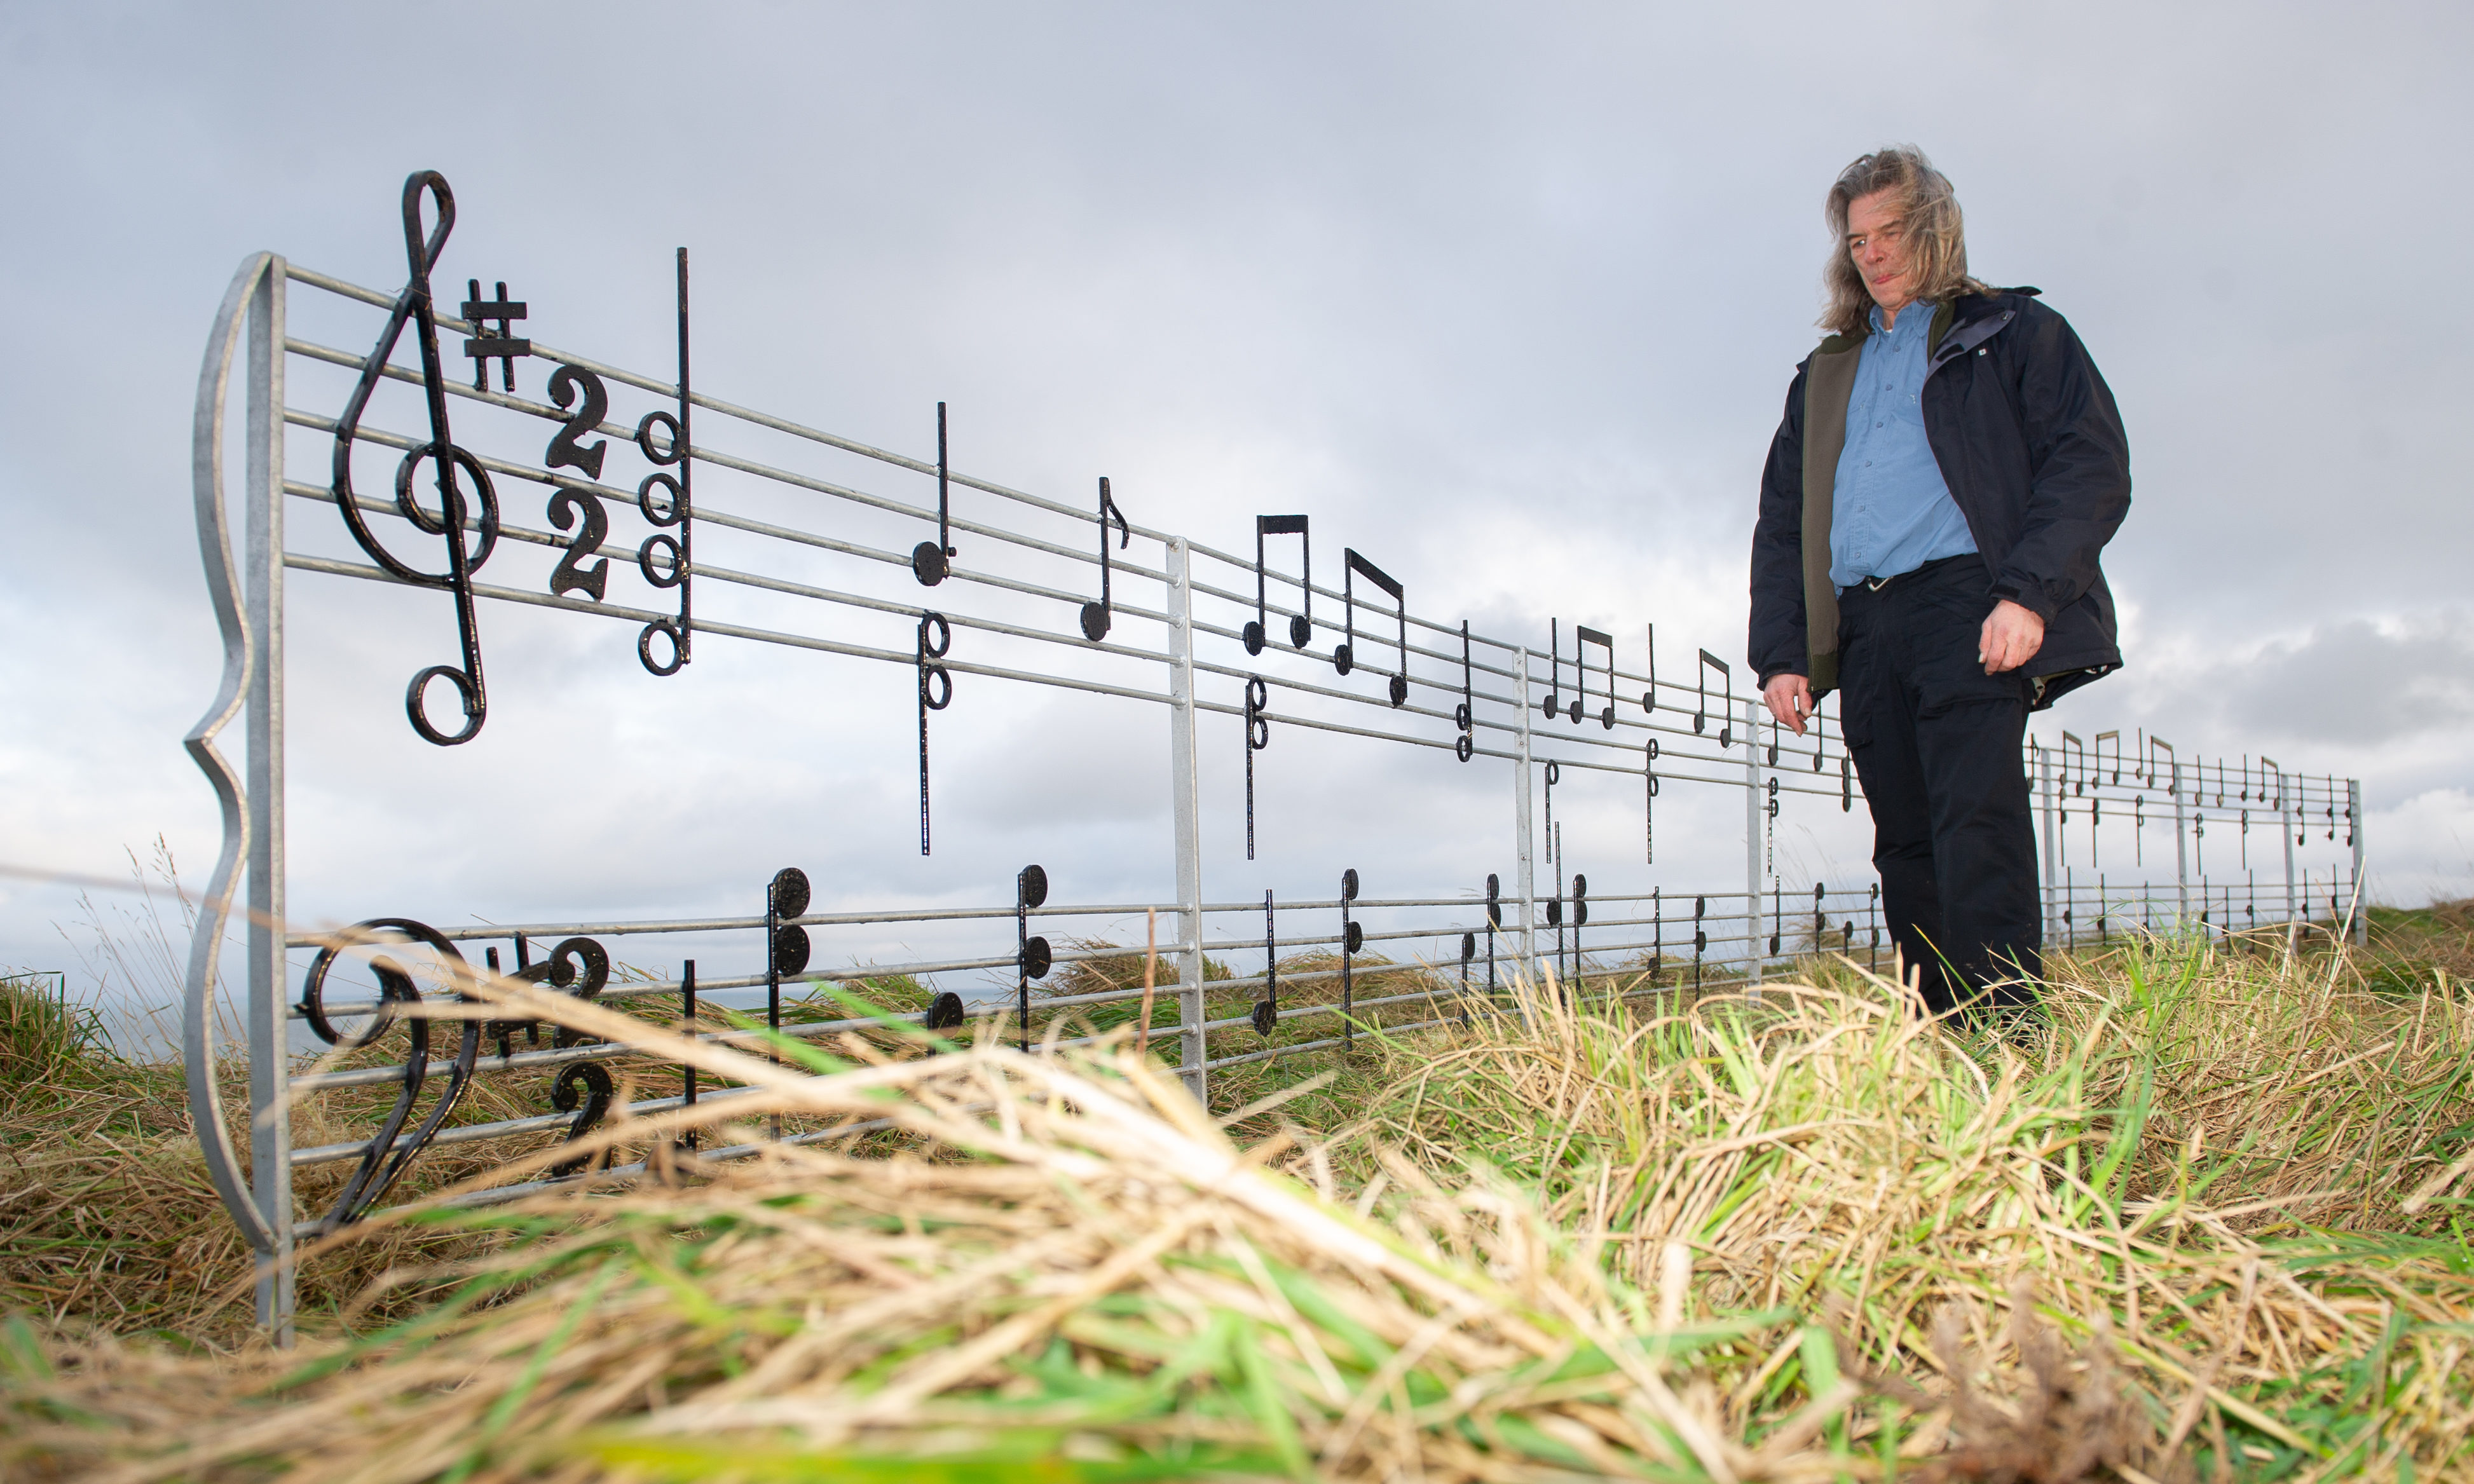 Rab Potter with the musical notes at the installation at their new location on the Seaton Cliffs, Arbroath, 17th December 2019, Kim Cessford / DCT Media.